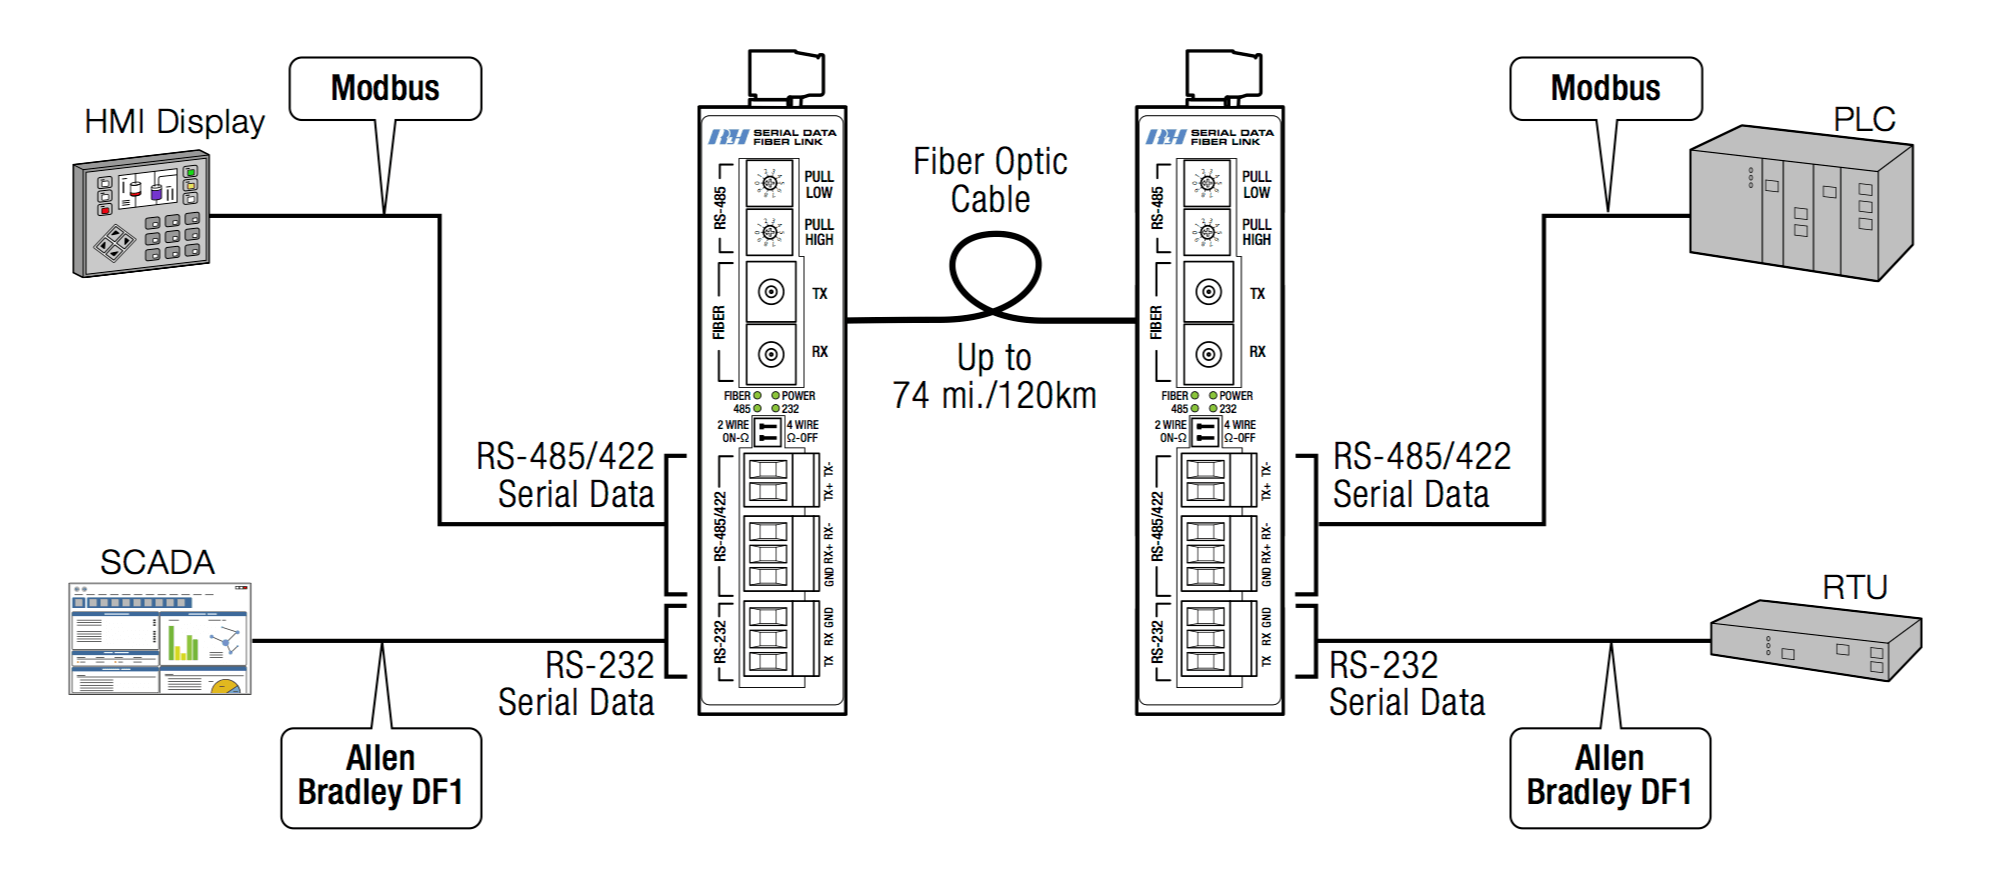 Serial Rs 422 Wiring Diagram Libraries Db25 Port Pinouts And Loopback Shadeblue Help Desk Libraryexelent 2wire Rs485 Embellishment 485